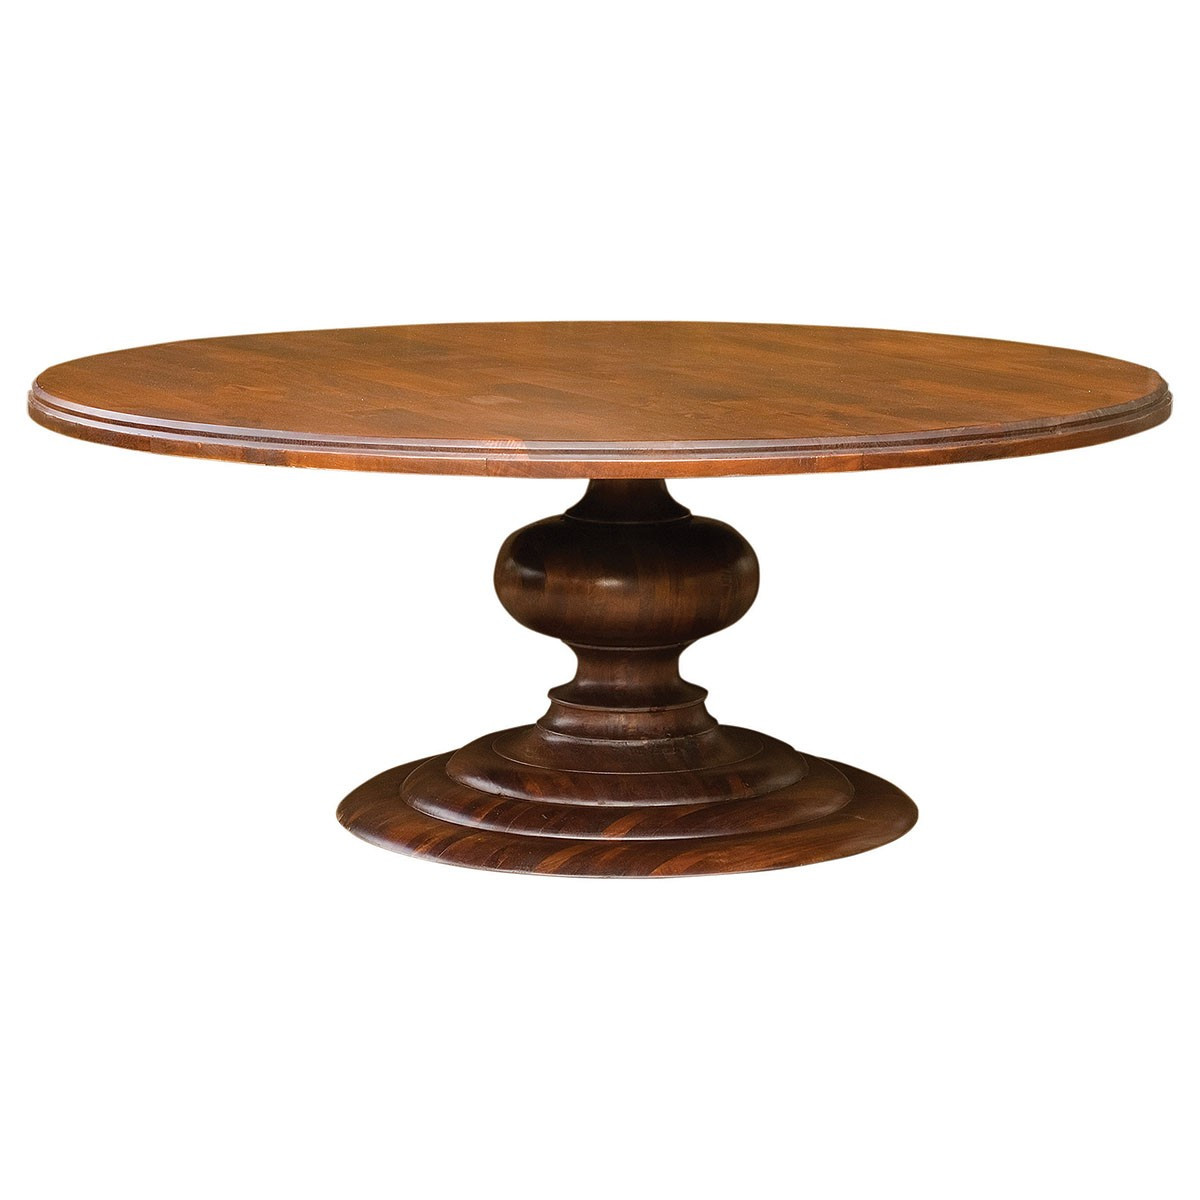 Dining table round pedestal dining table 72 inch for Biggest dining table